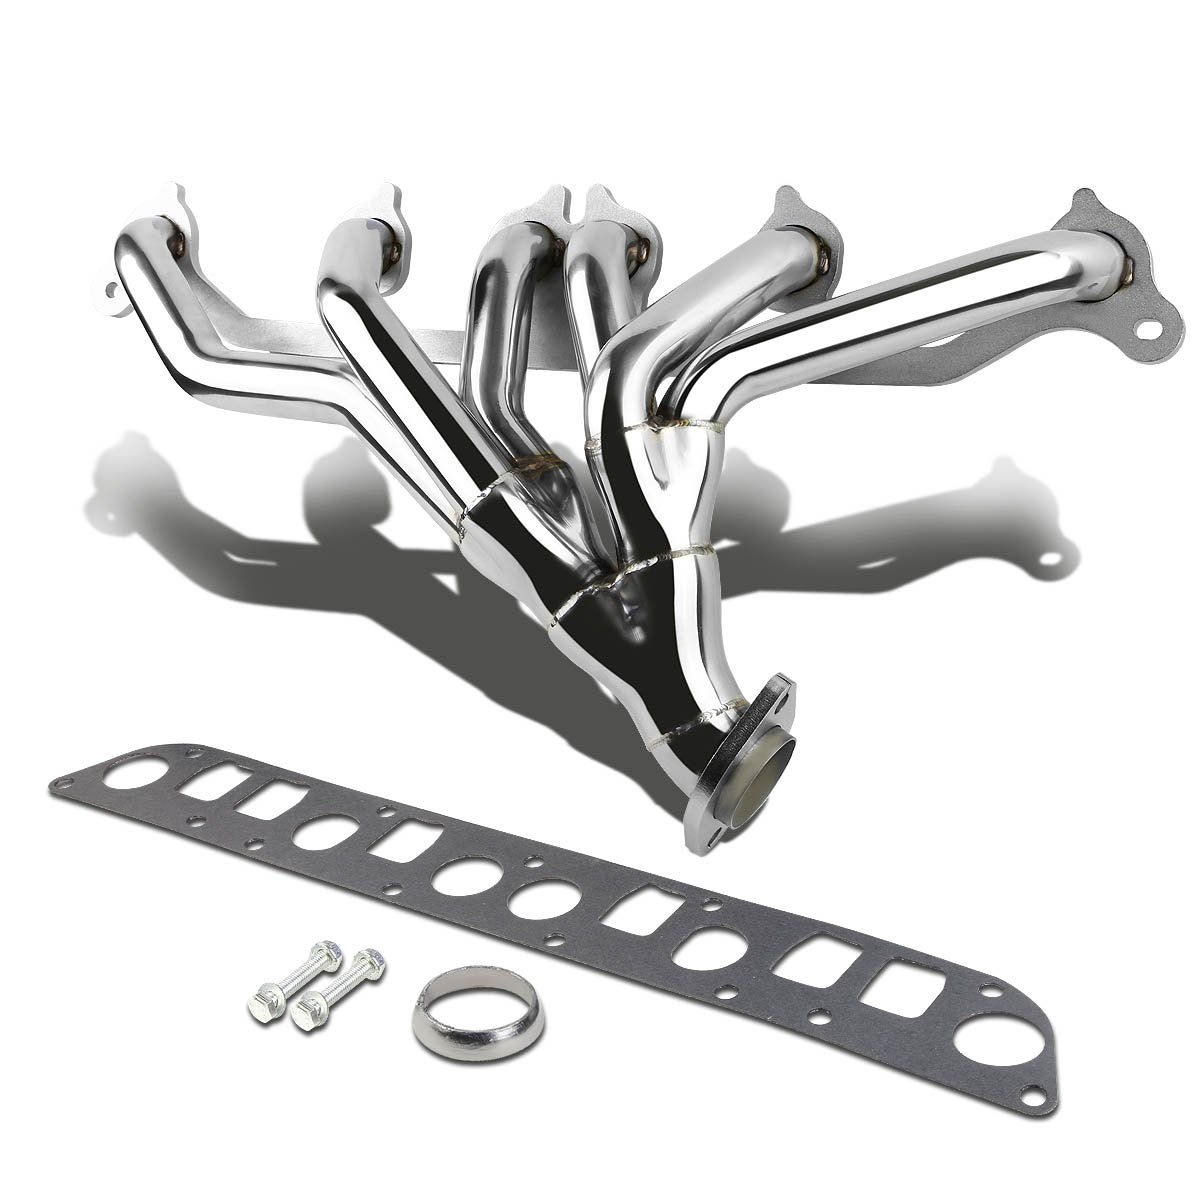 DNA MOTORING HDS-JC9140 Racing Exhaust Header